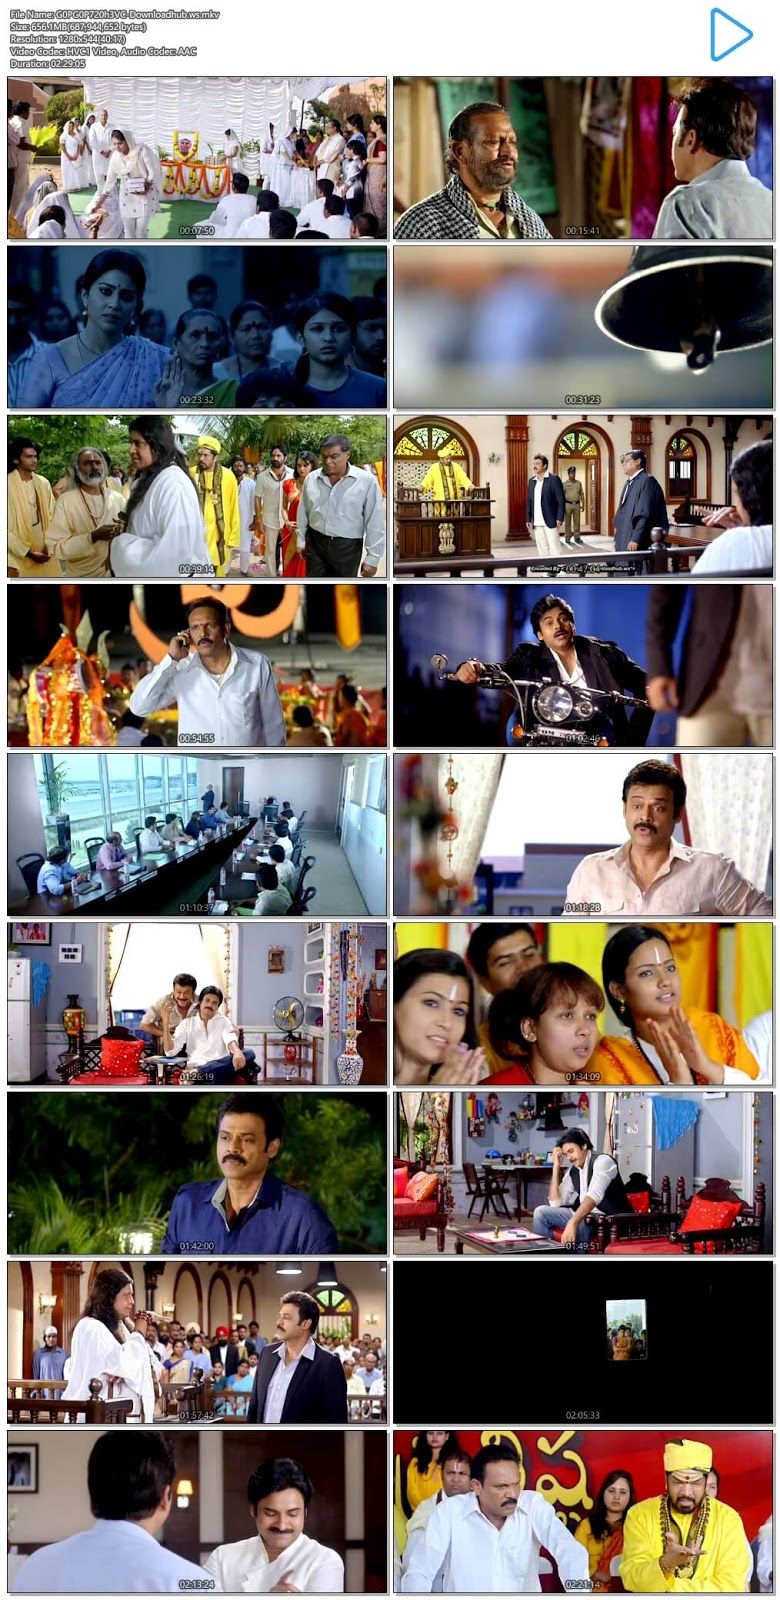 Gopala Gopala 2015 UNCUT Hindi Dual Audio 720p HEVC HDRip Download